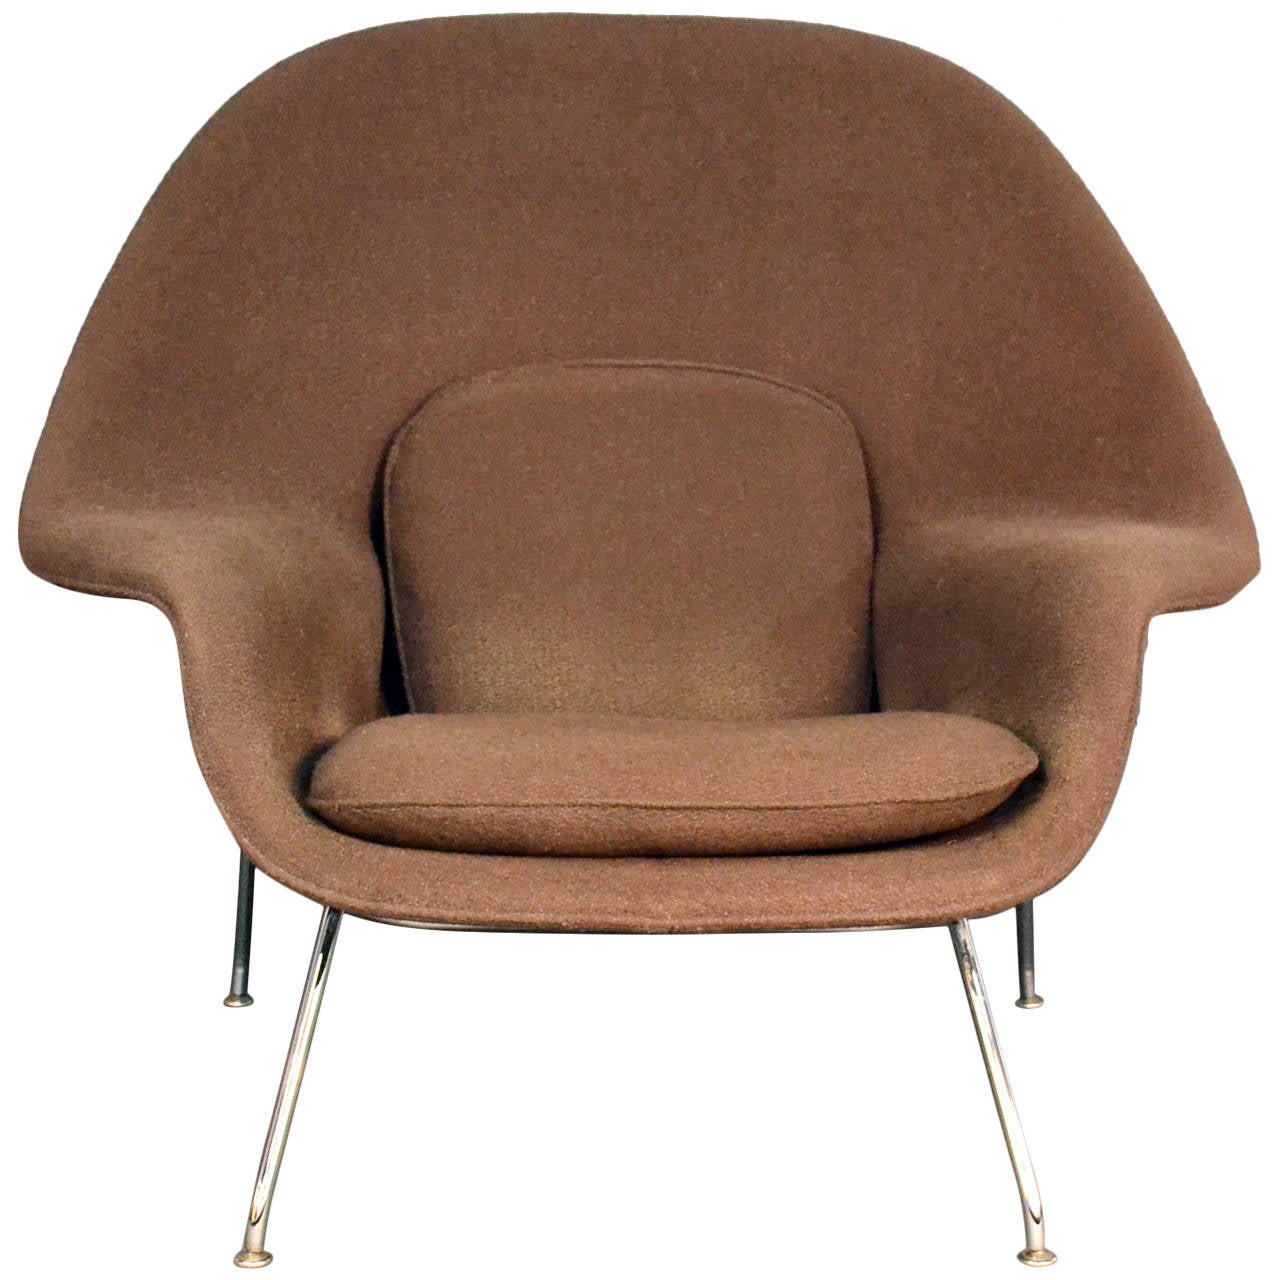 eero saarinen womb chair by knoll at 1stdibs. Black Bedroom Furniture Sets. Home Design Ideas